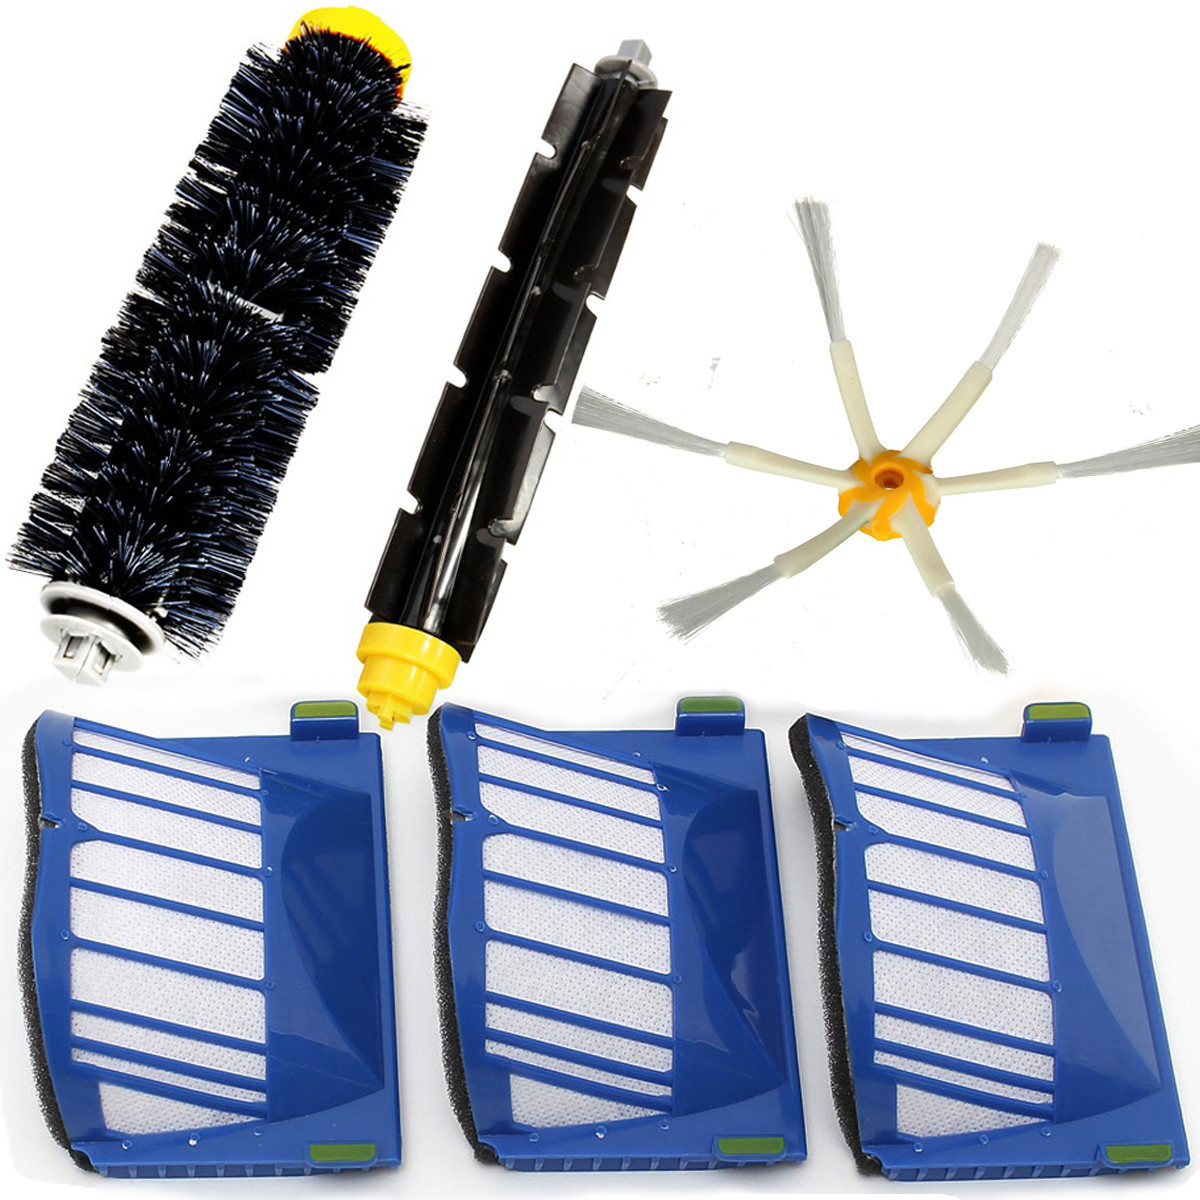 6Pcs Vacuum Cleaner Accessories Filters Brush Pack Kit For iRobot Roomba 600 Series 600 620 630 650